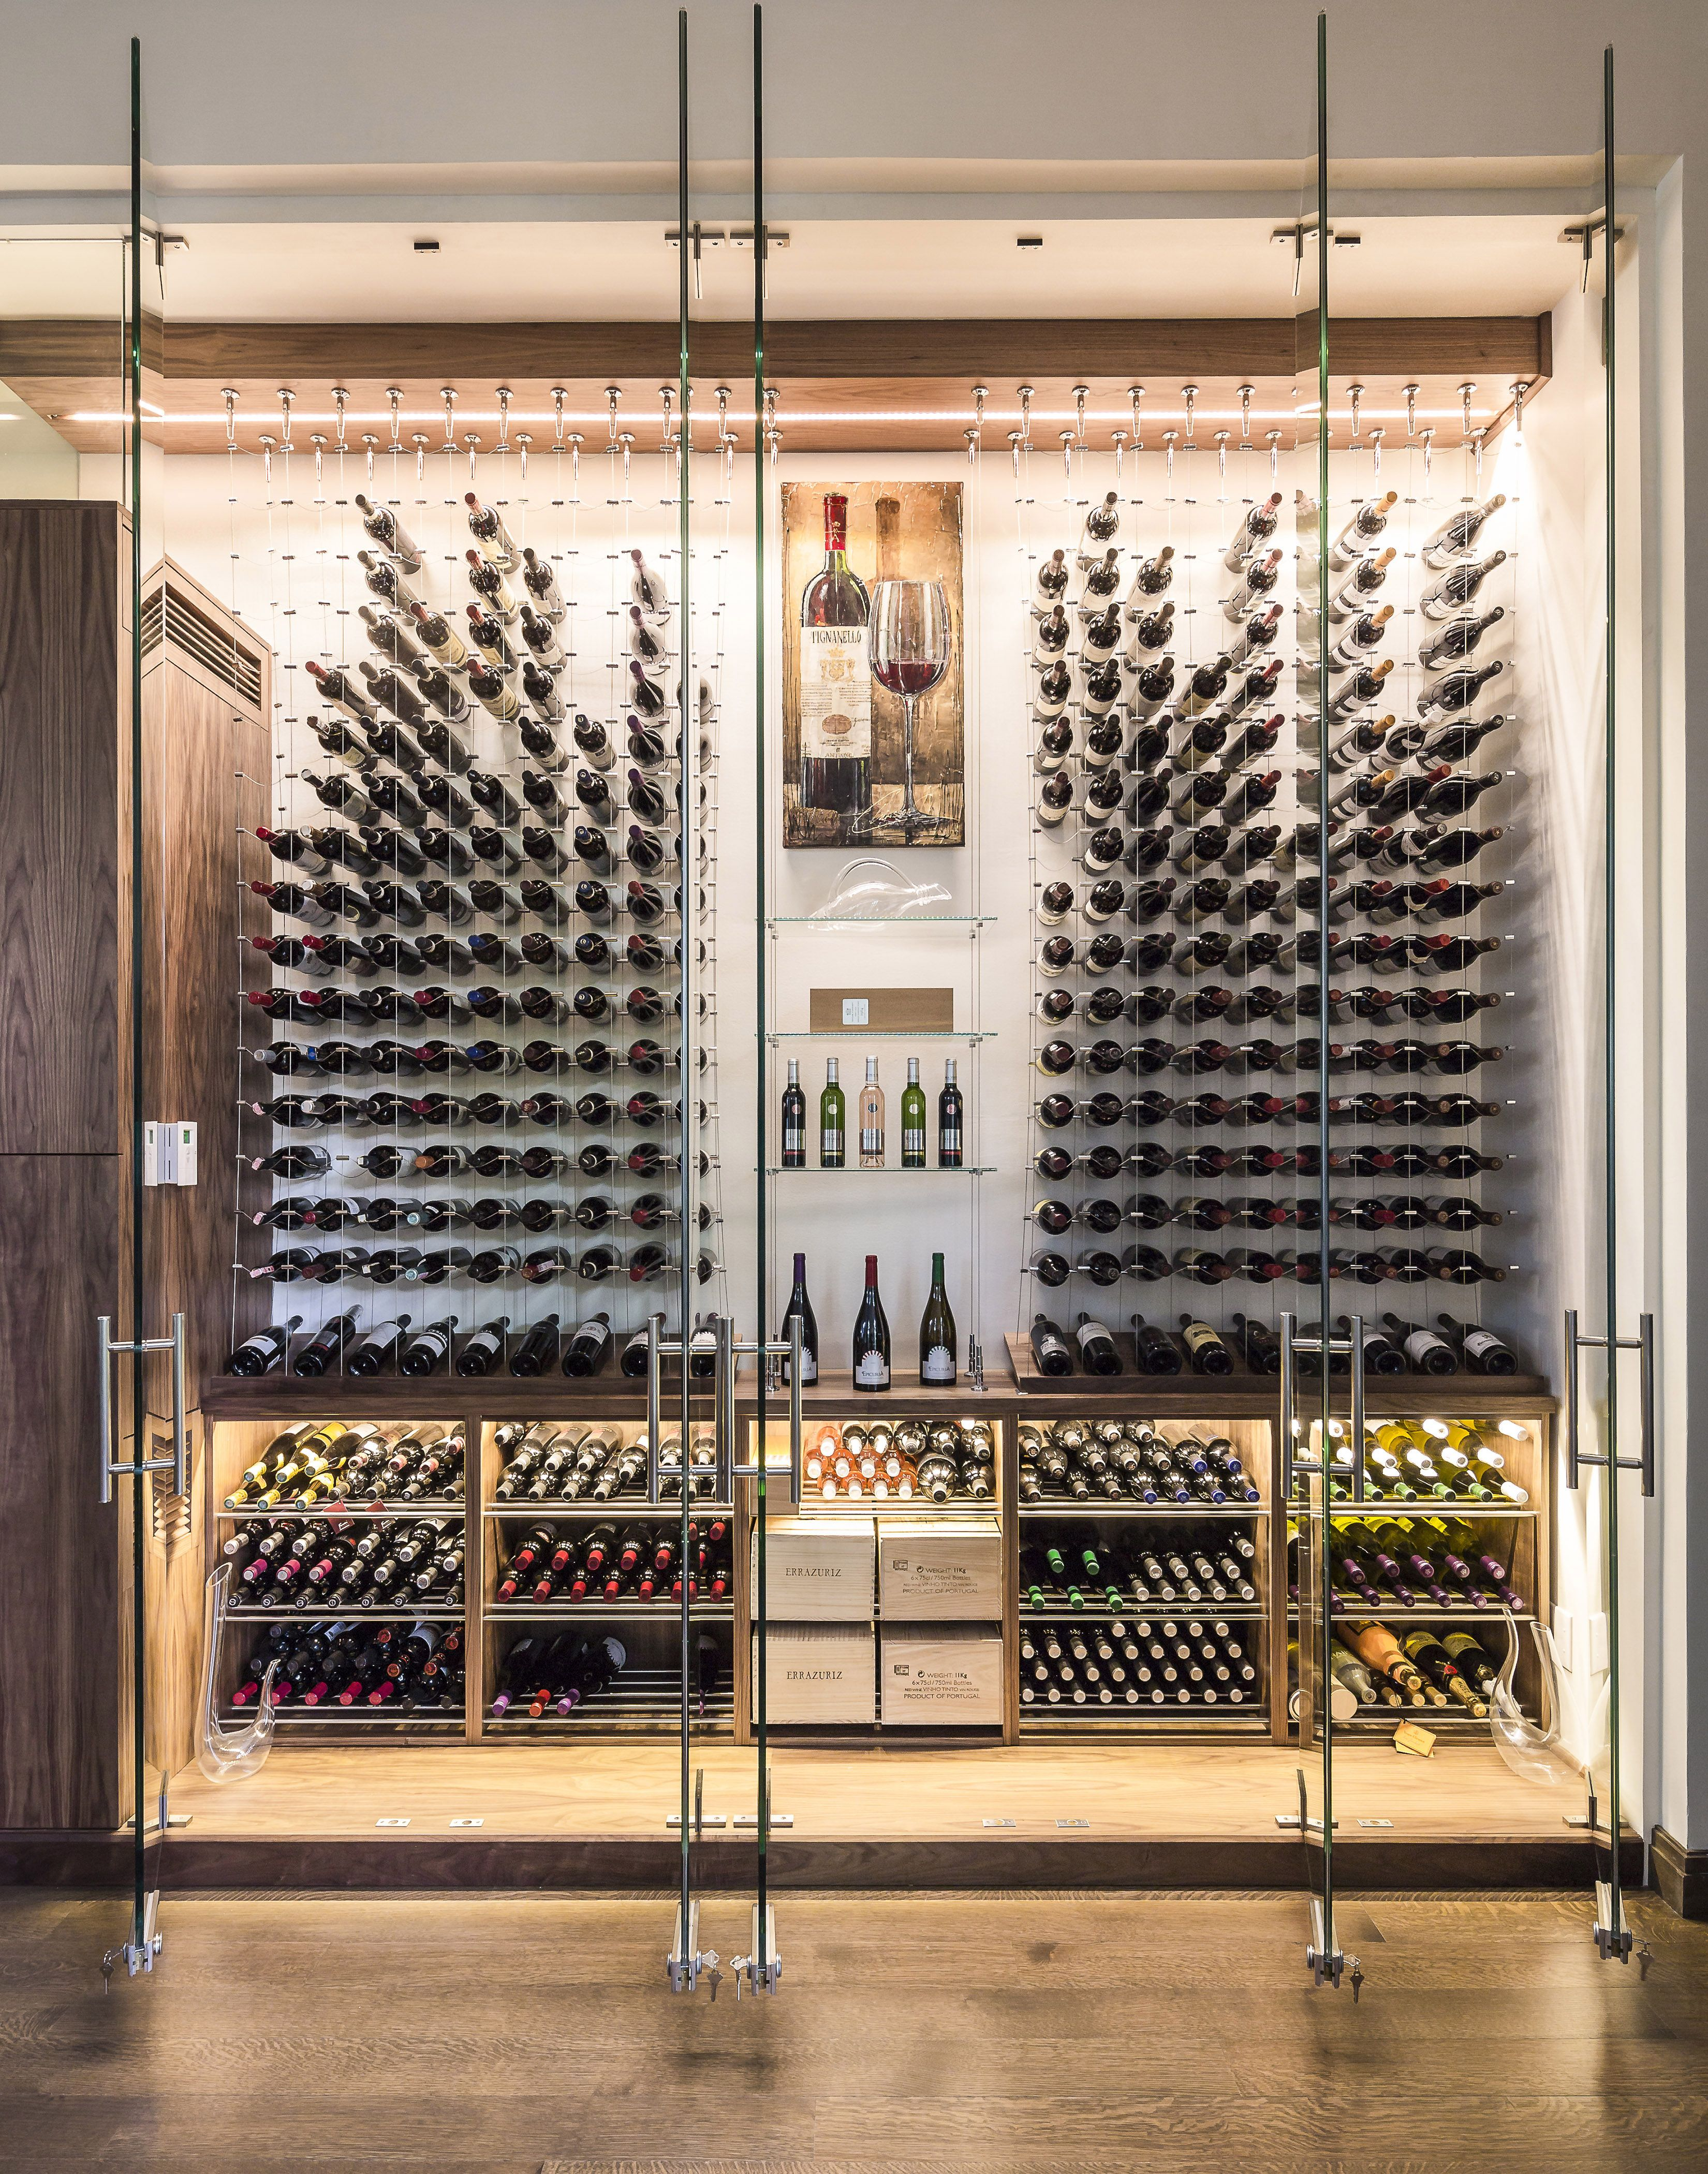 modern custom reach in wine cellar featuring the cable wine systemmodern custom reach in wine cellar featuring the cable wine system www cablewinesystems com designed and constructed by papro wine cellars \u0026 consulting ltd